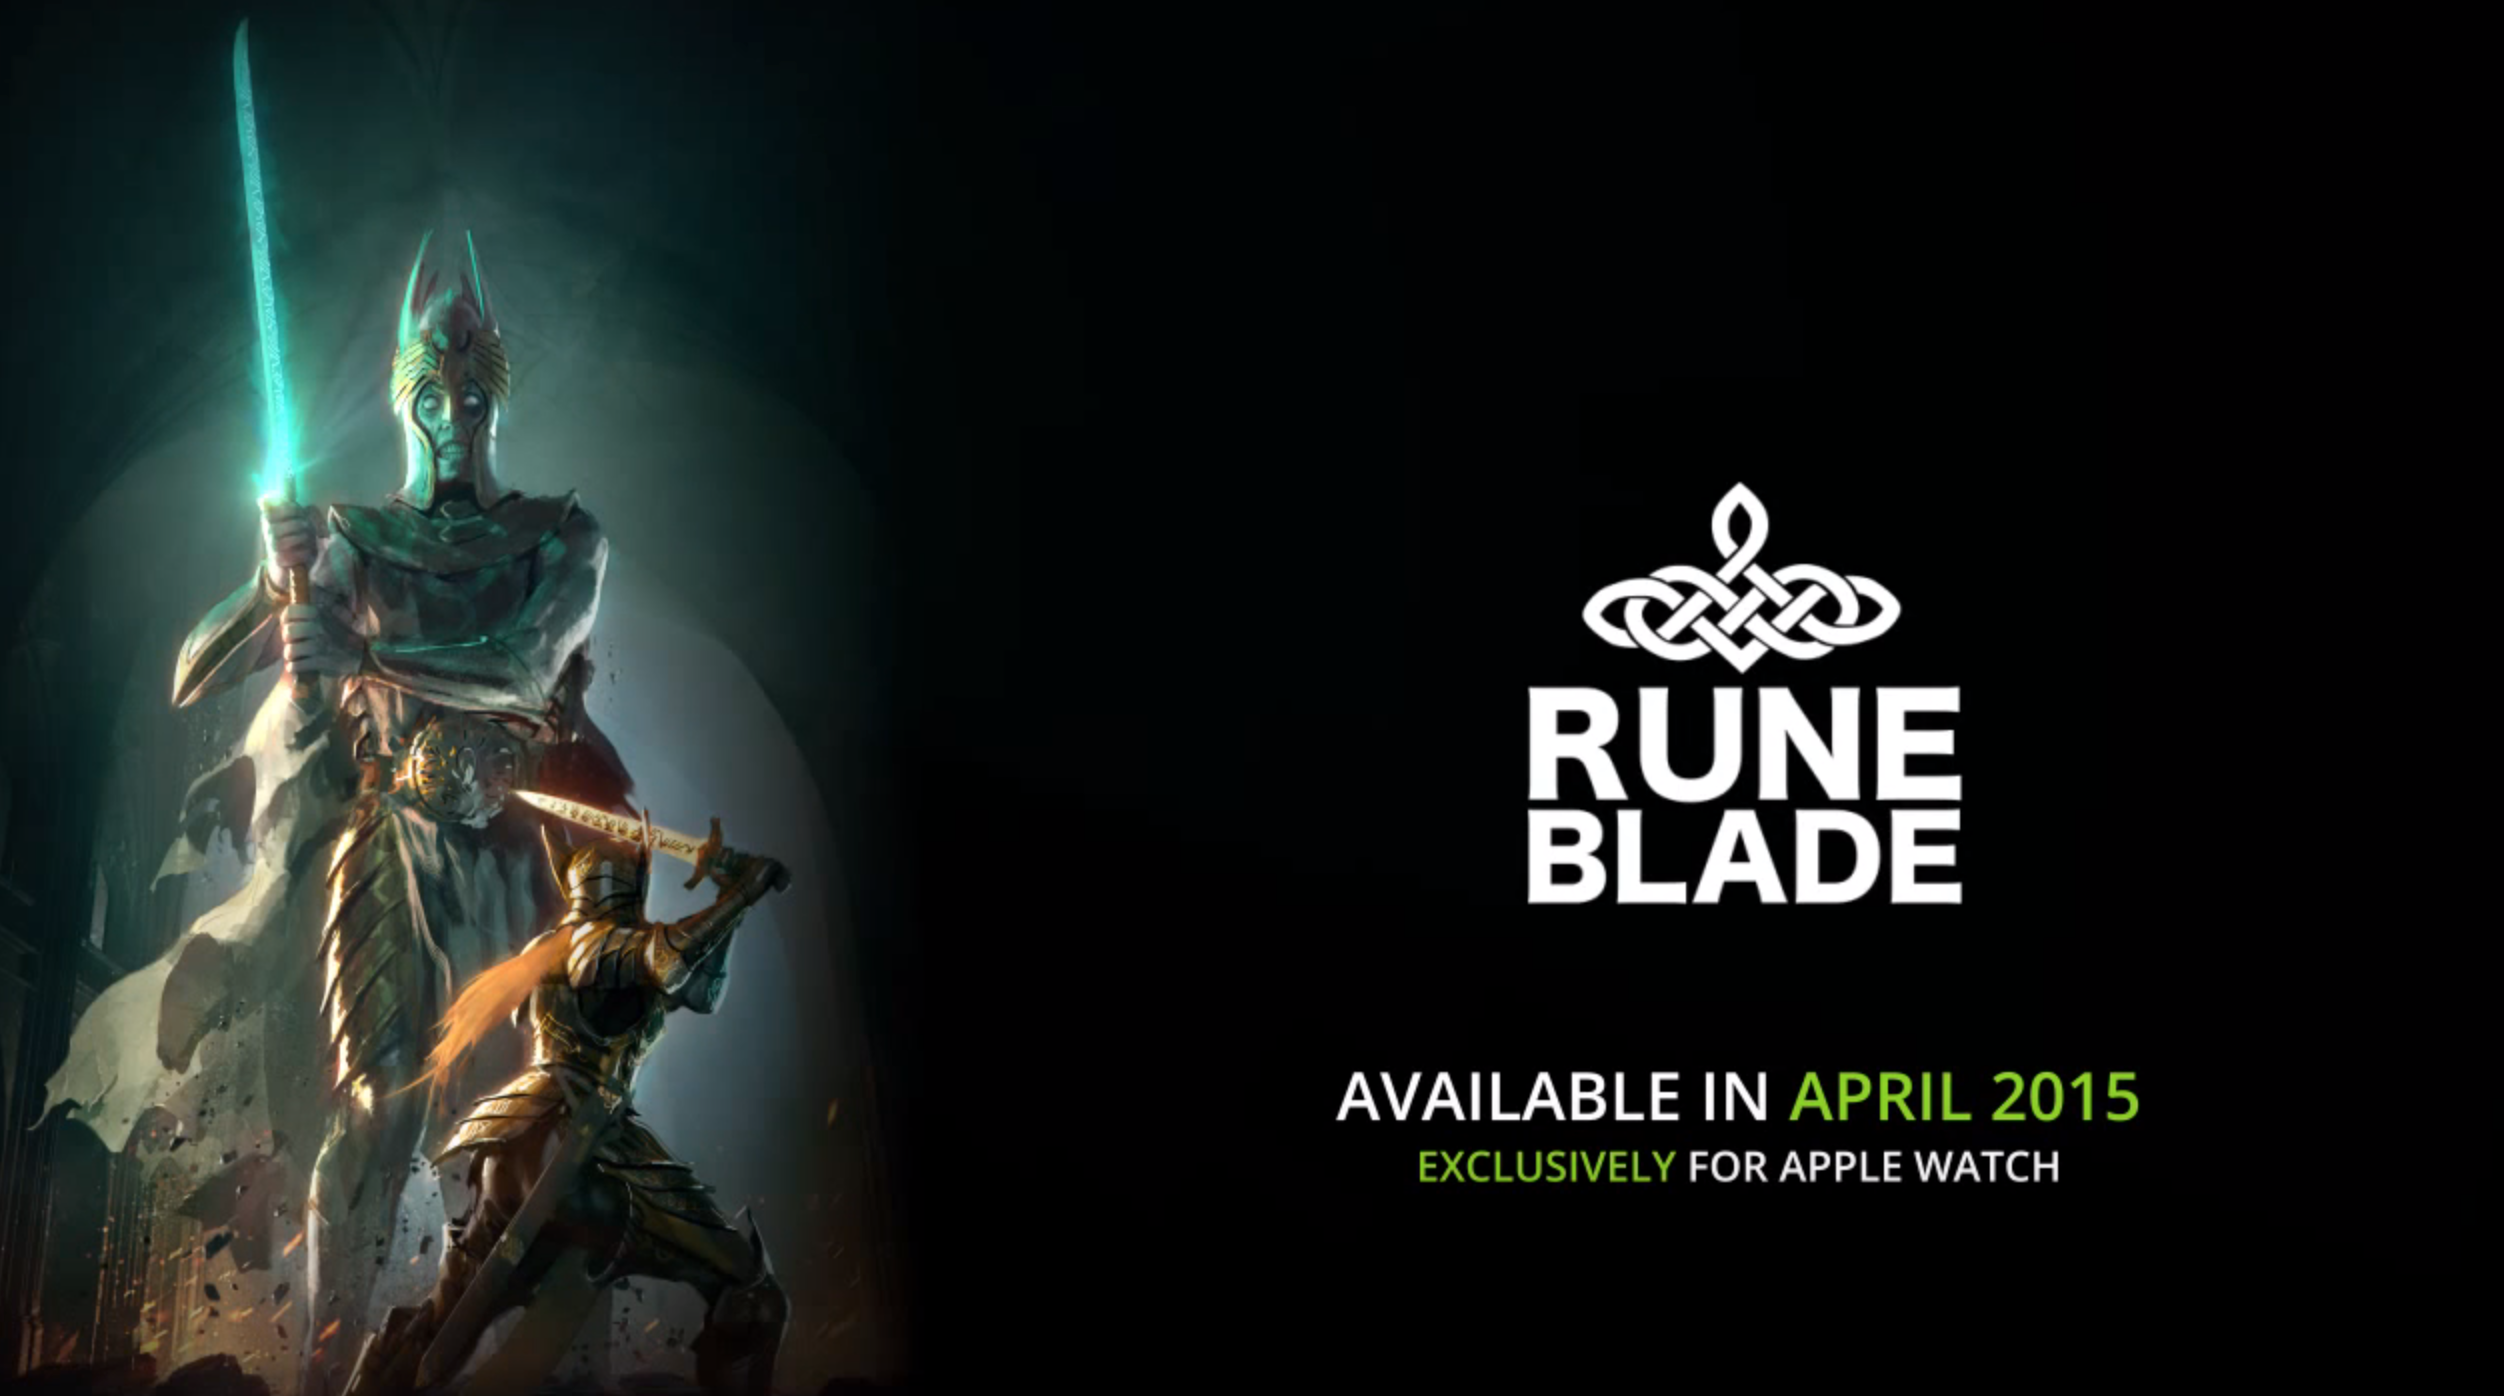 Runeblade, an upcoming Apple Watch game, aims to bring the RPG genre to your wrist